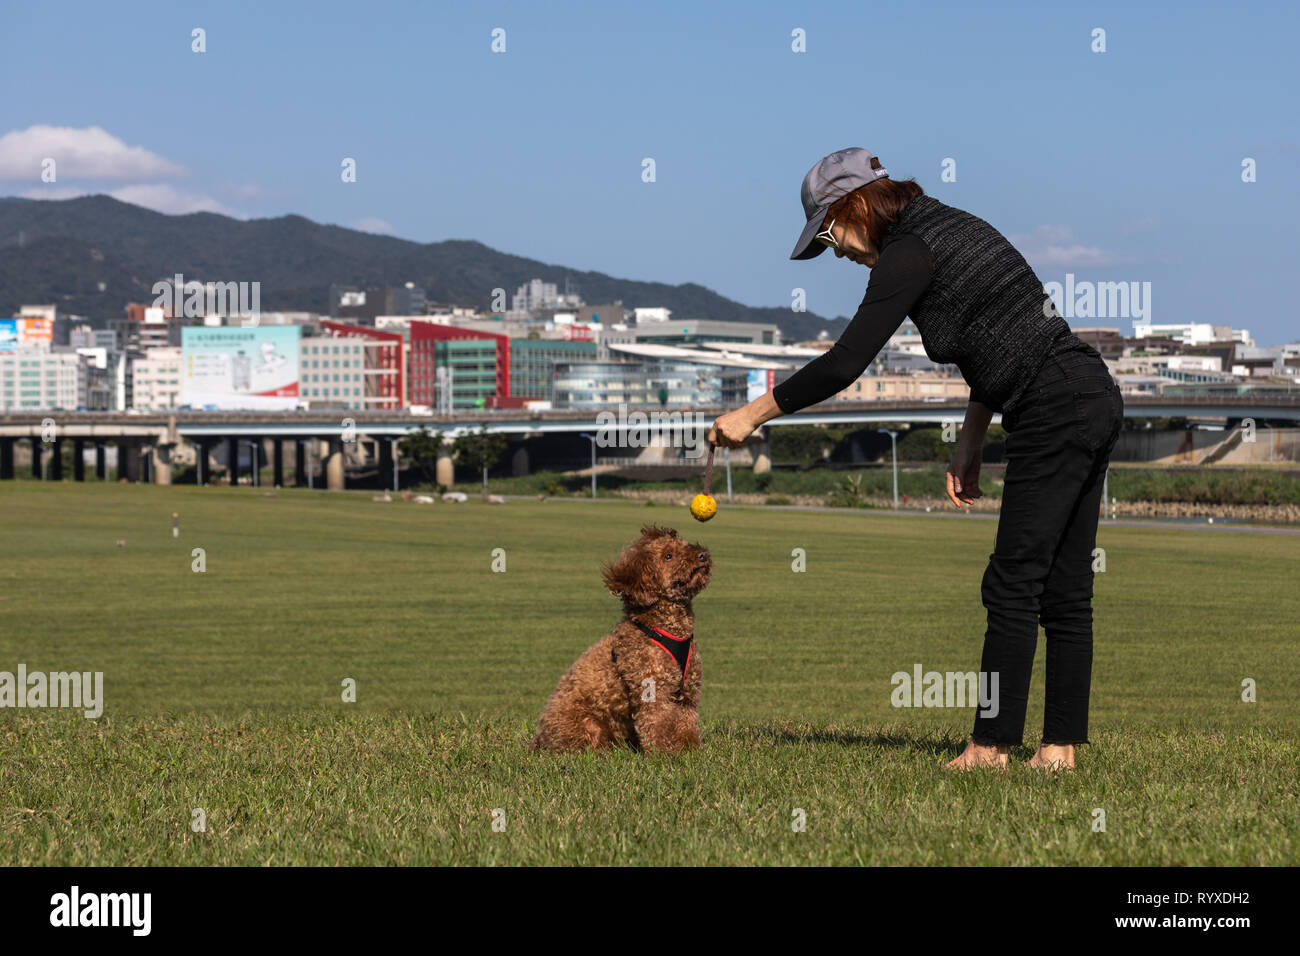 Brown poodle focusing on the ball while playing fetch with its owner. Stock Photo